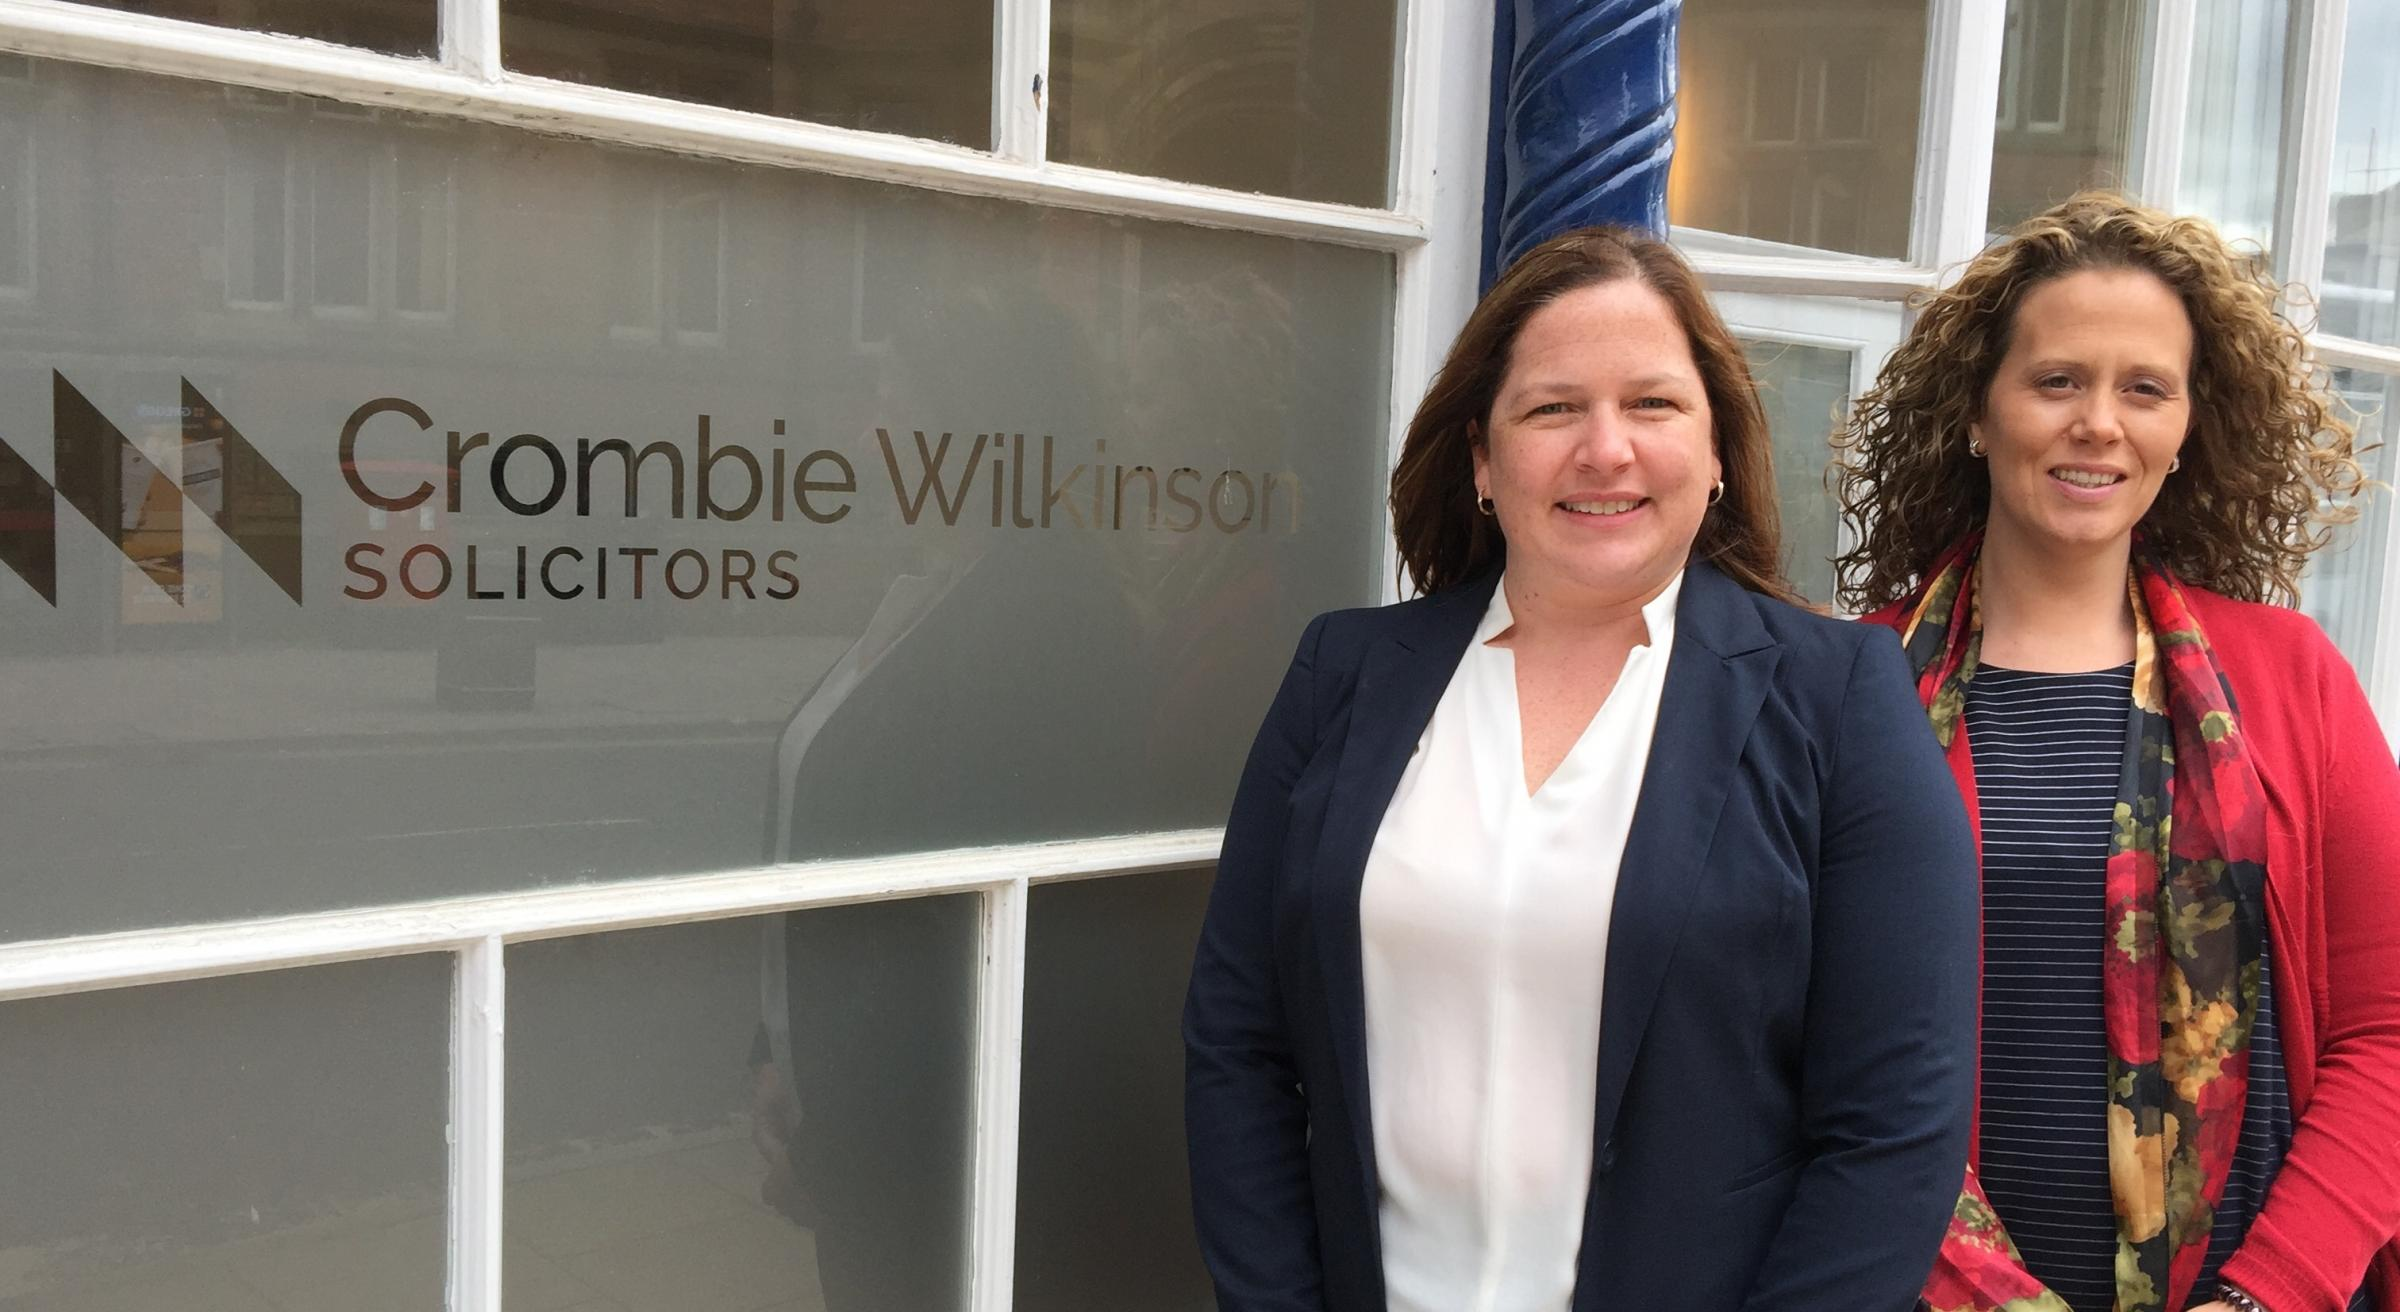 Jessica Appleby and Jessica Duffy - New Directors at Crombie Wilkinson Solicitors